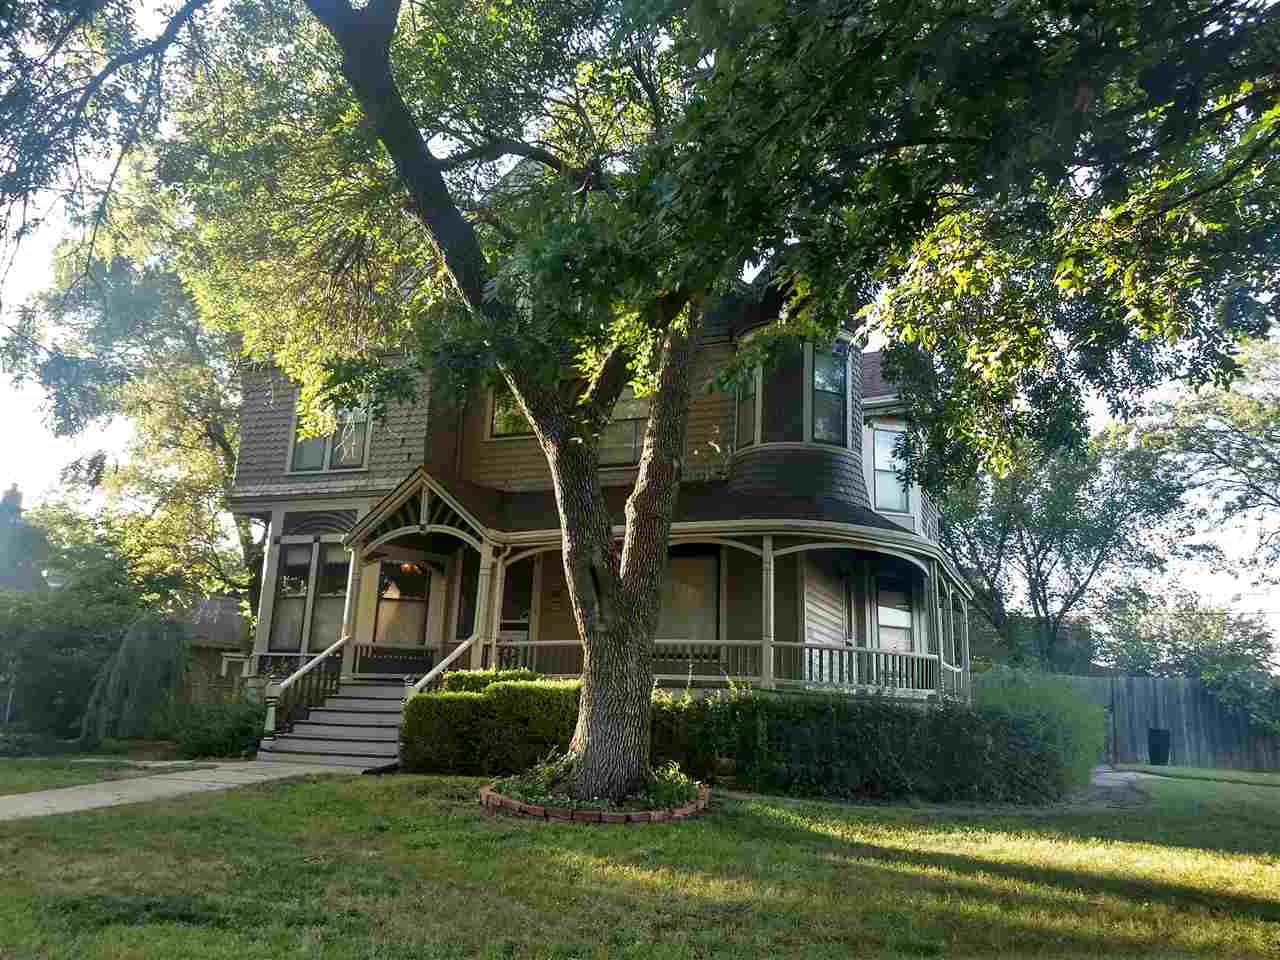 If you've been searching for the perfect Victorian home, this is it!!! Built in 1878 by a Civil War